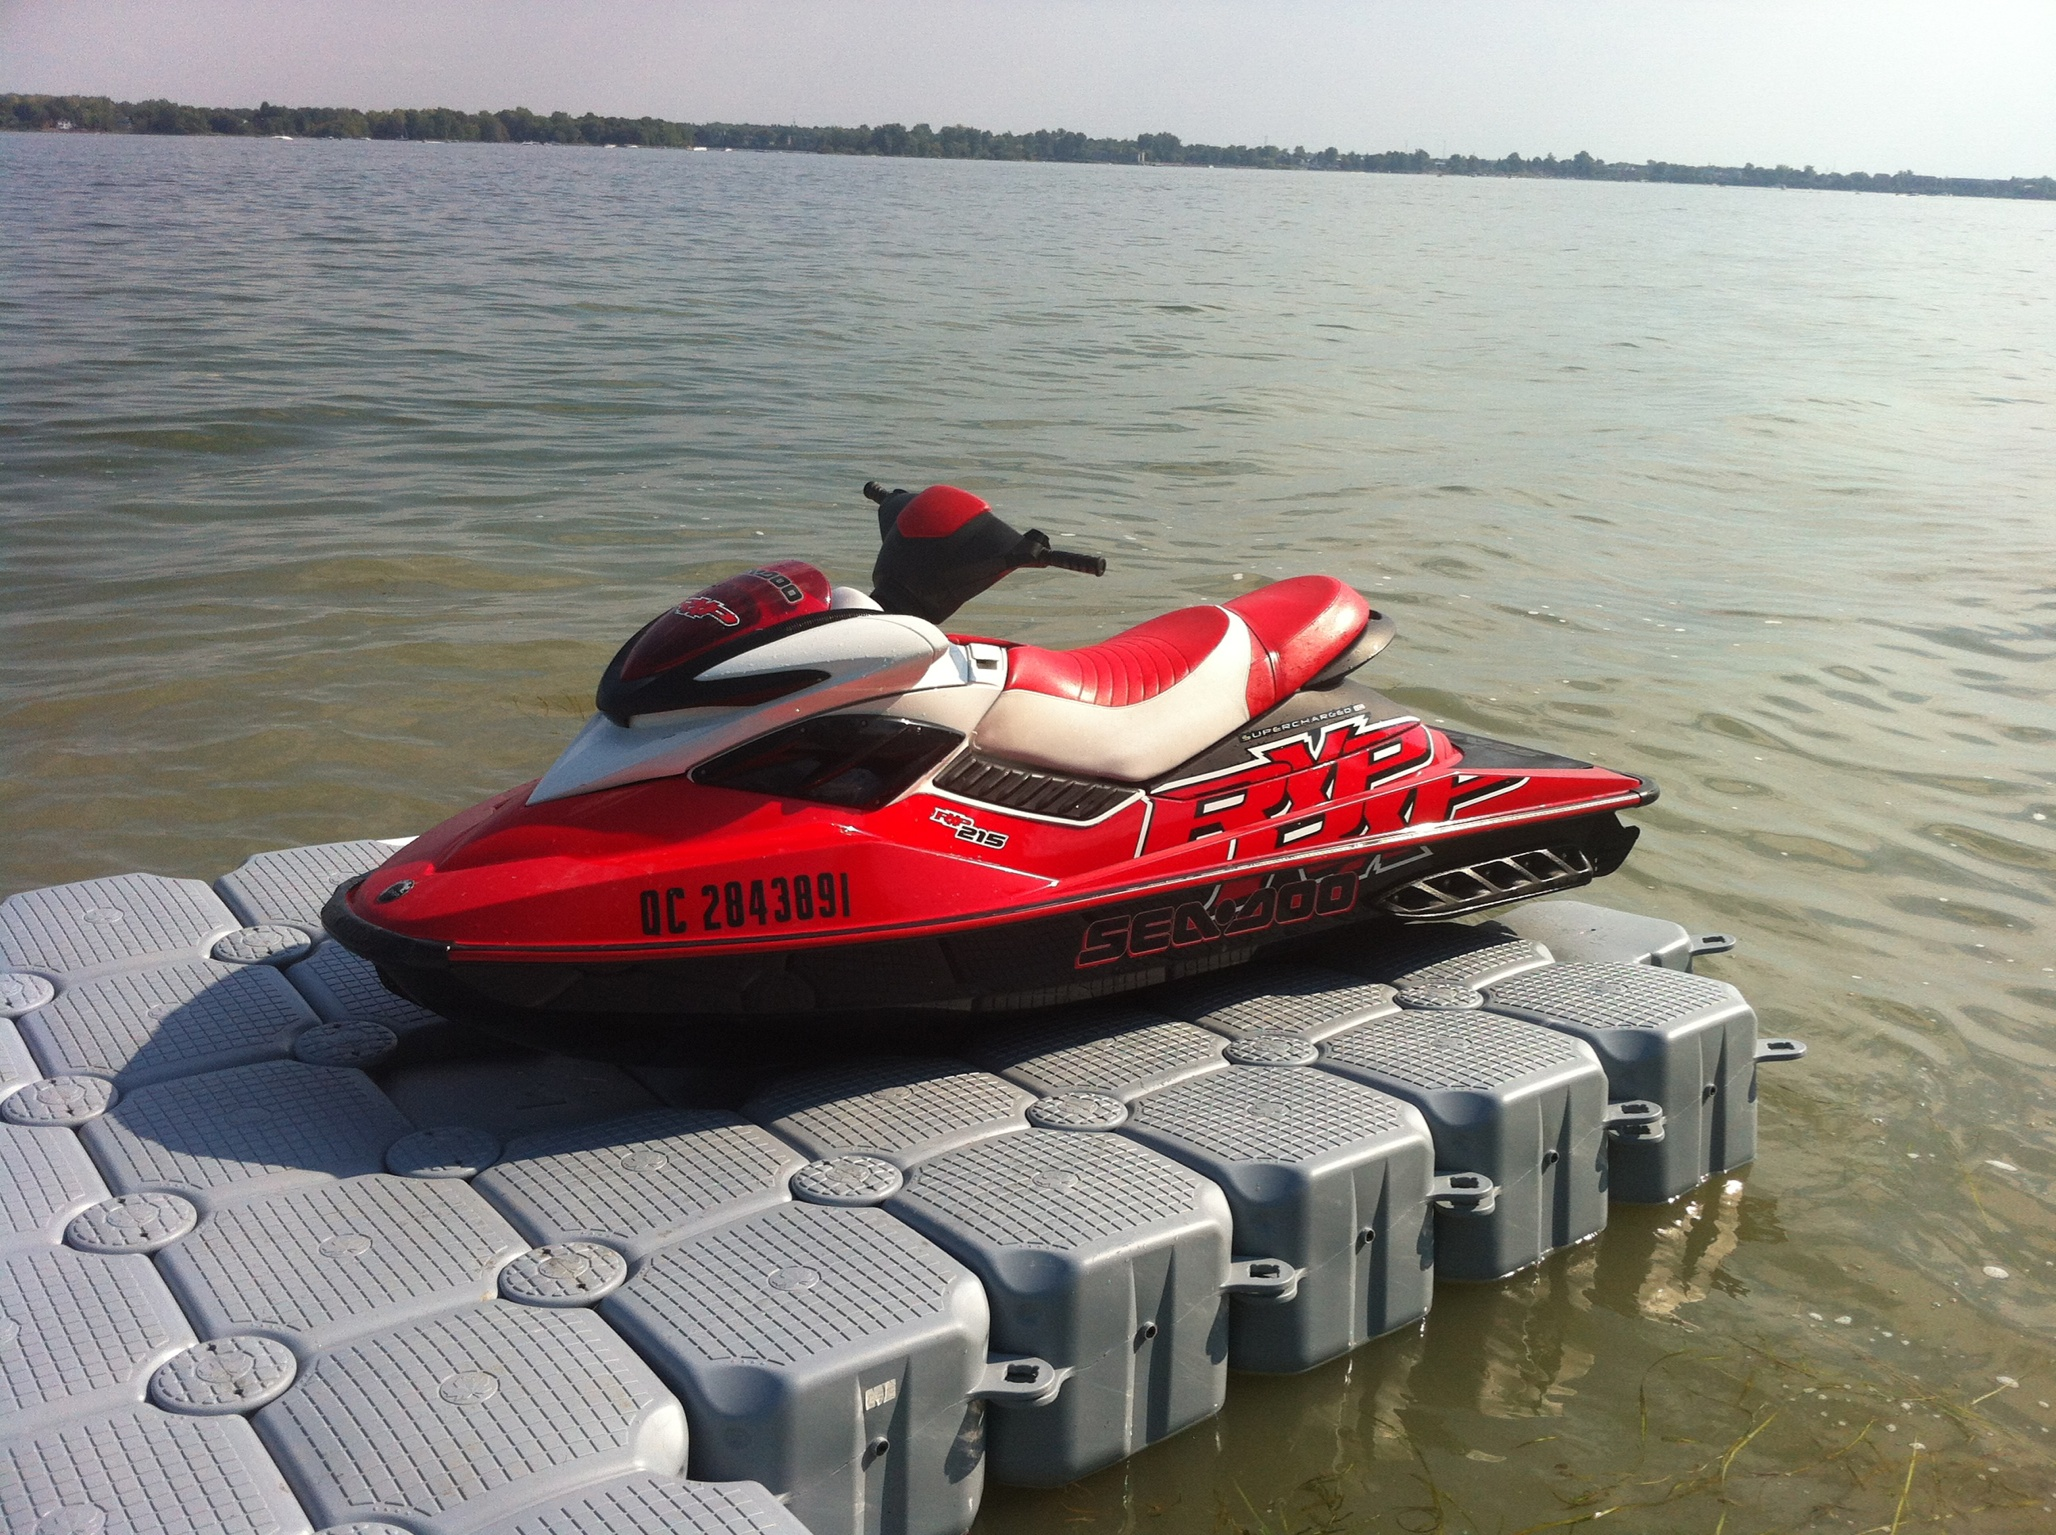 Drive-on system for Jetski